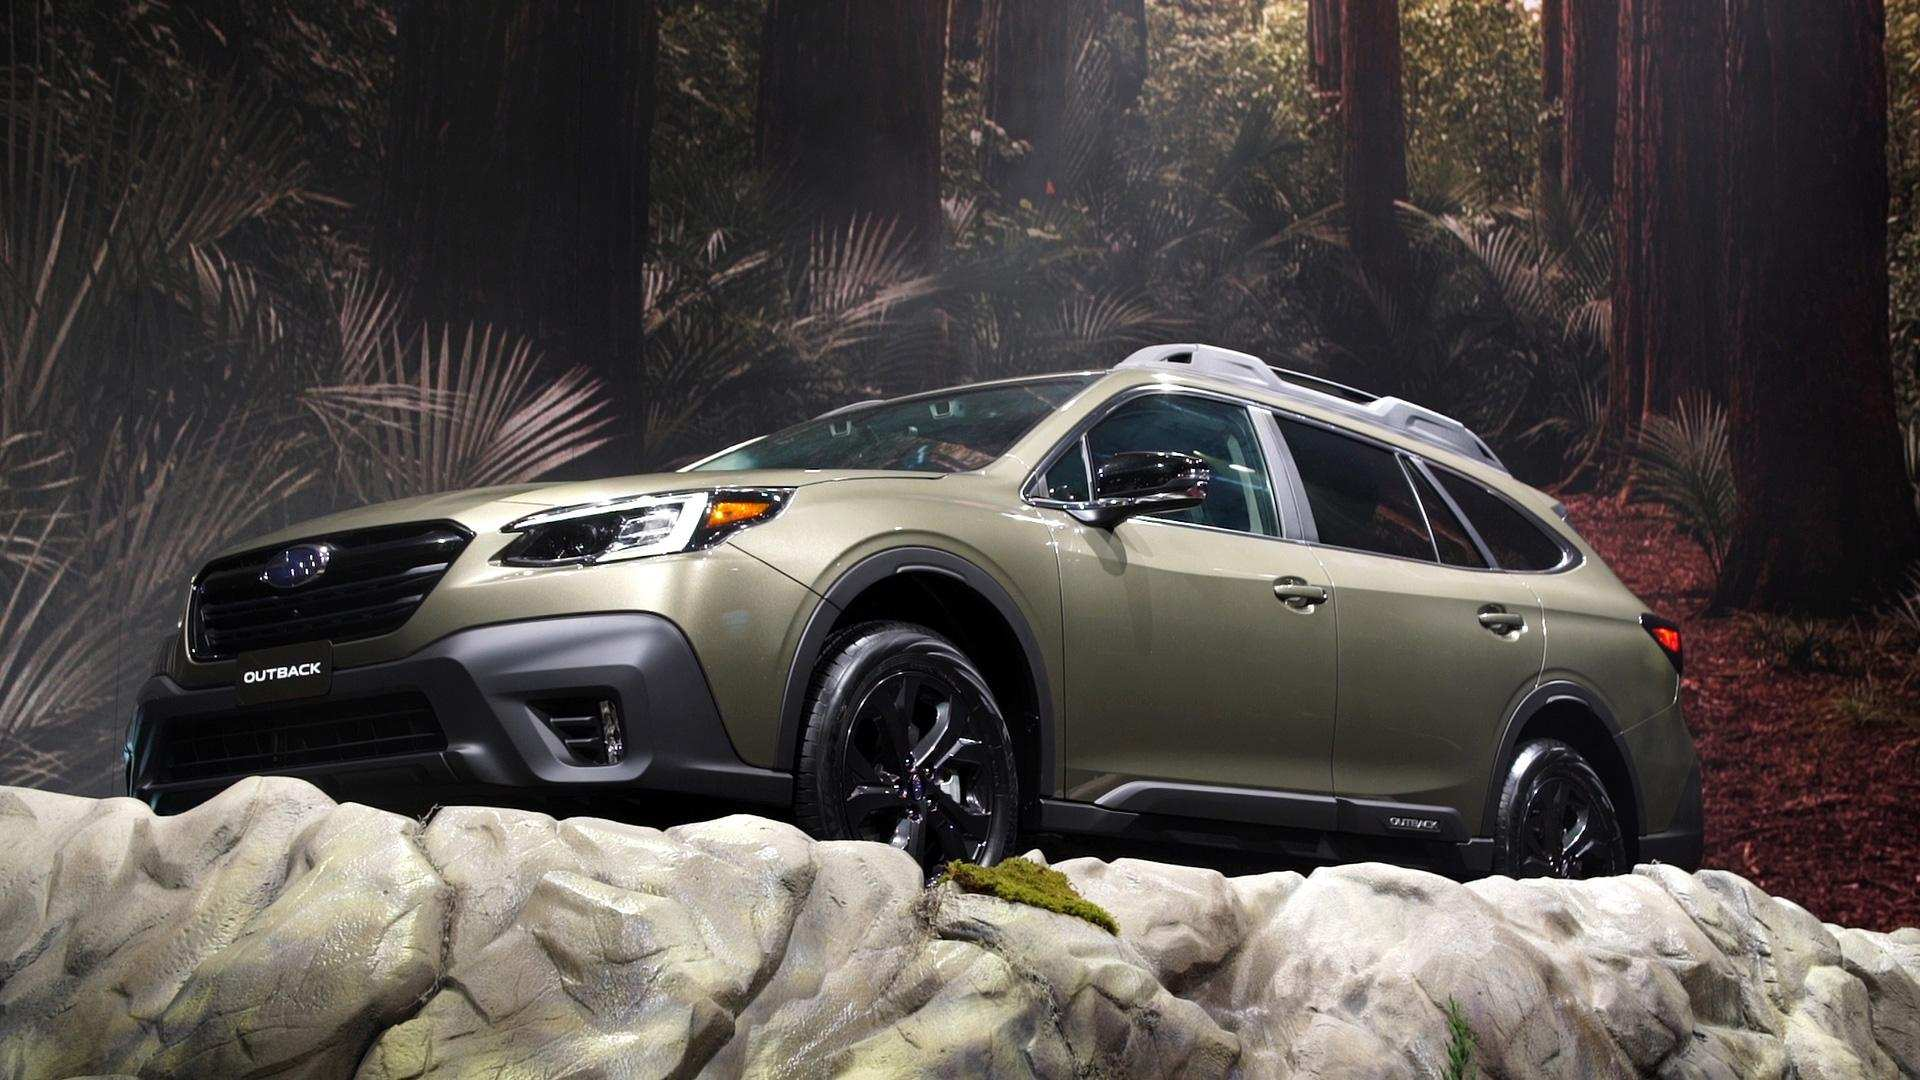 75 New 2020 Subaru Outback Review